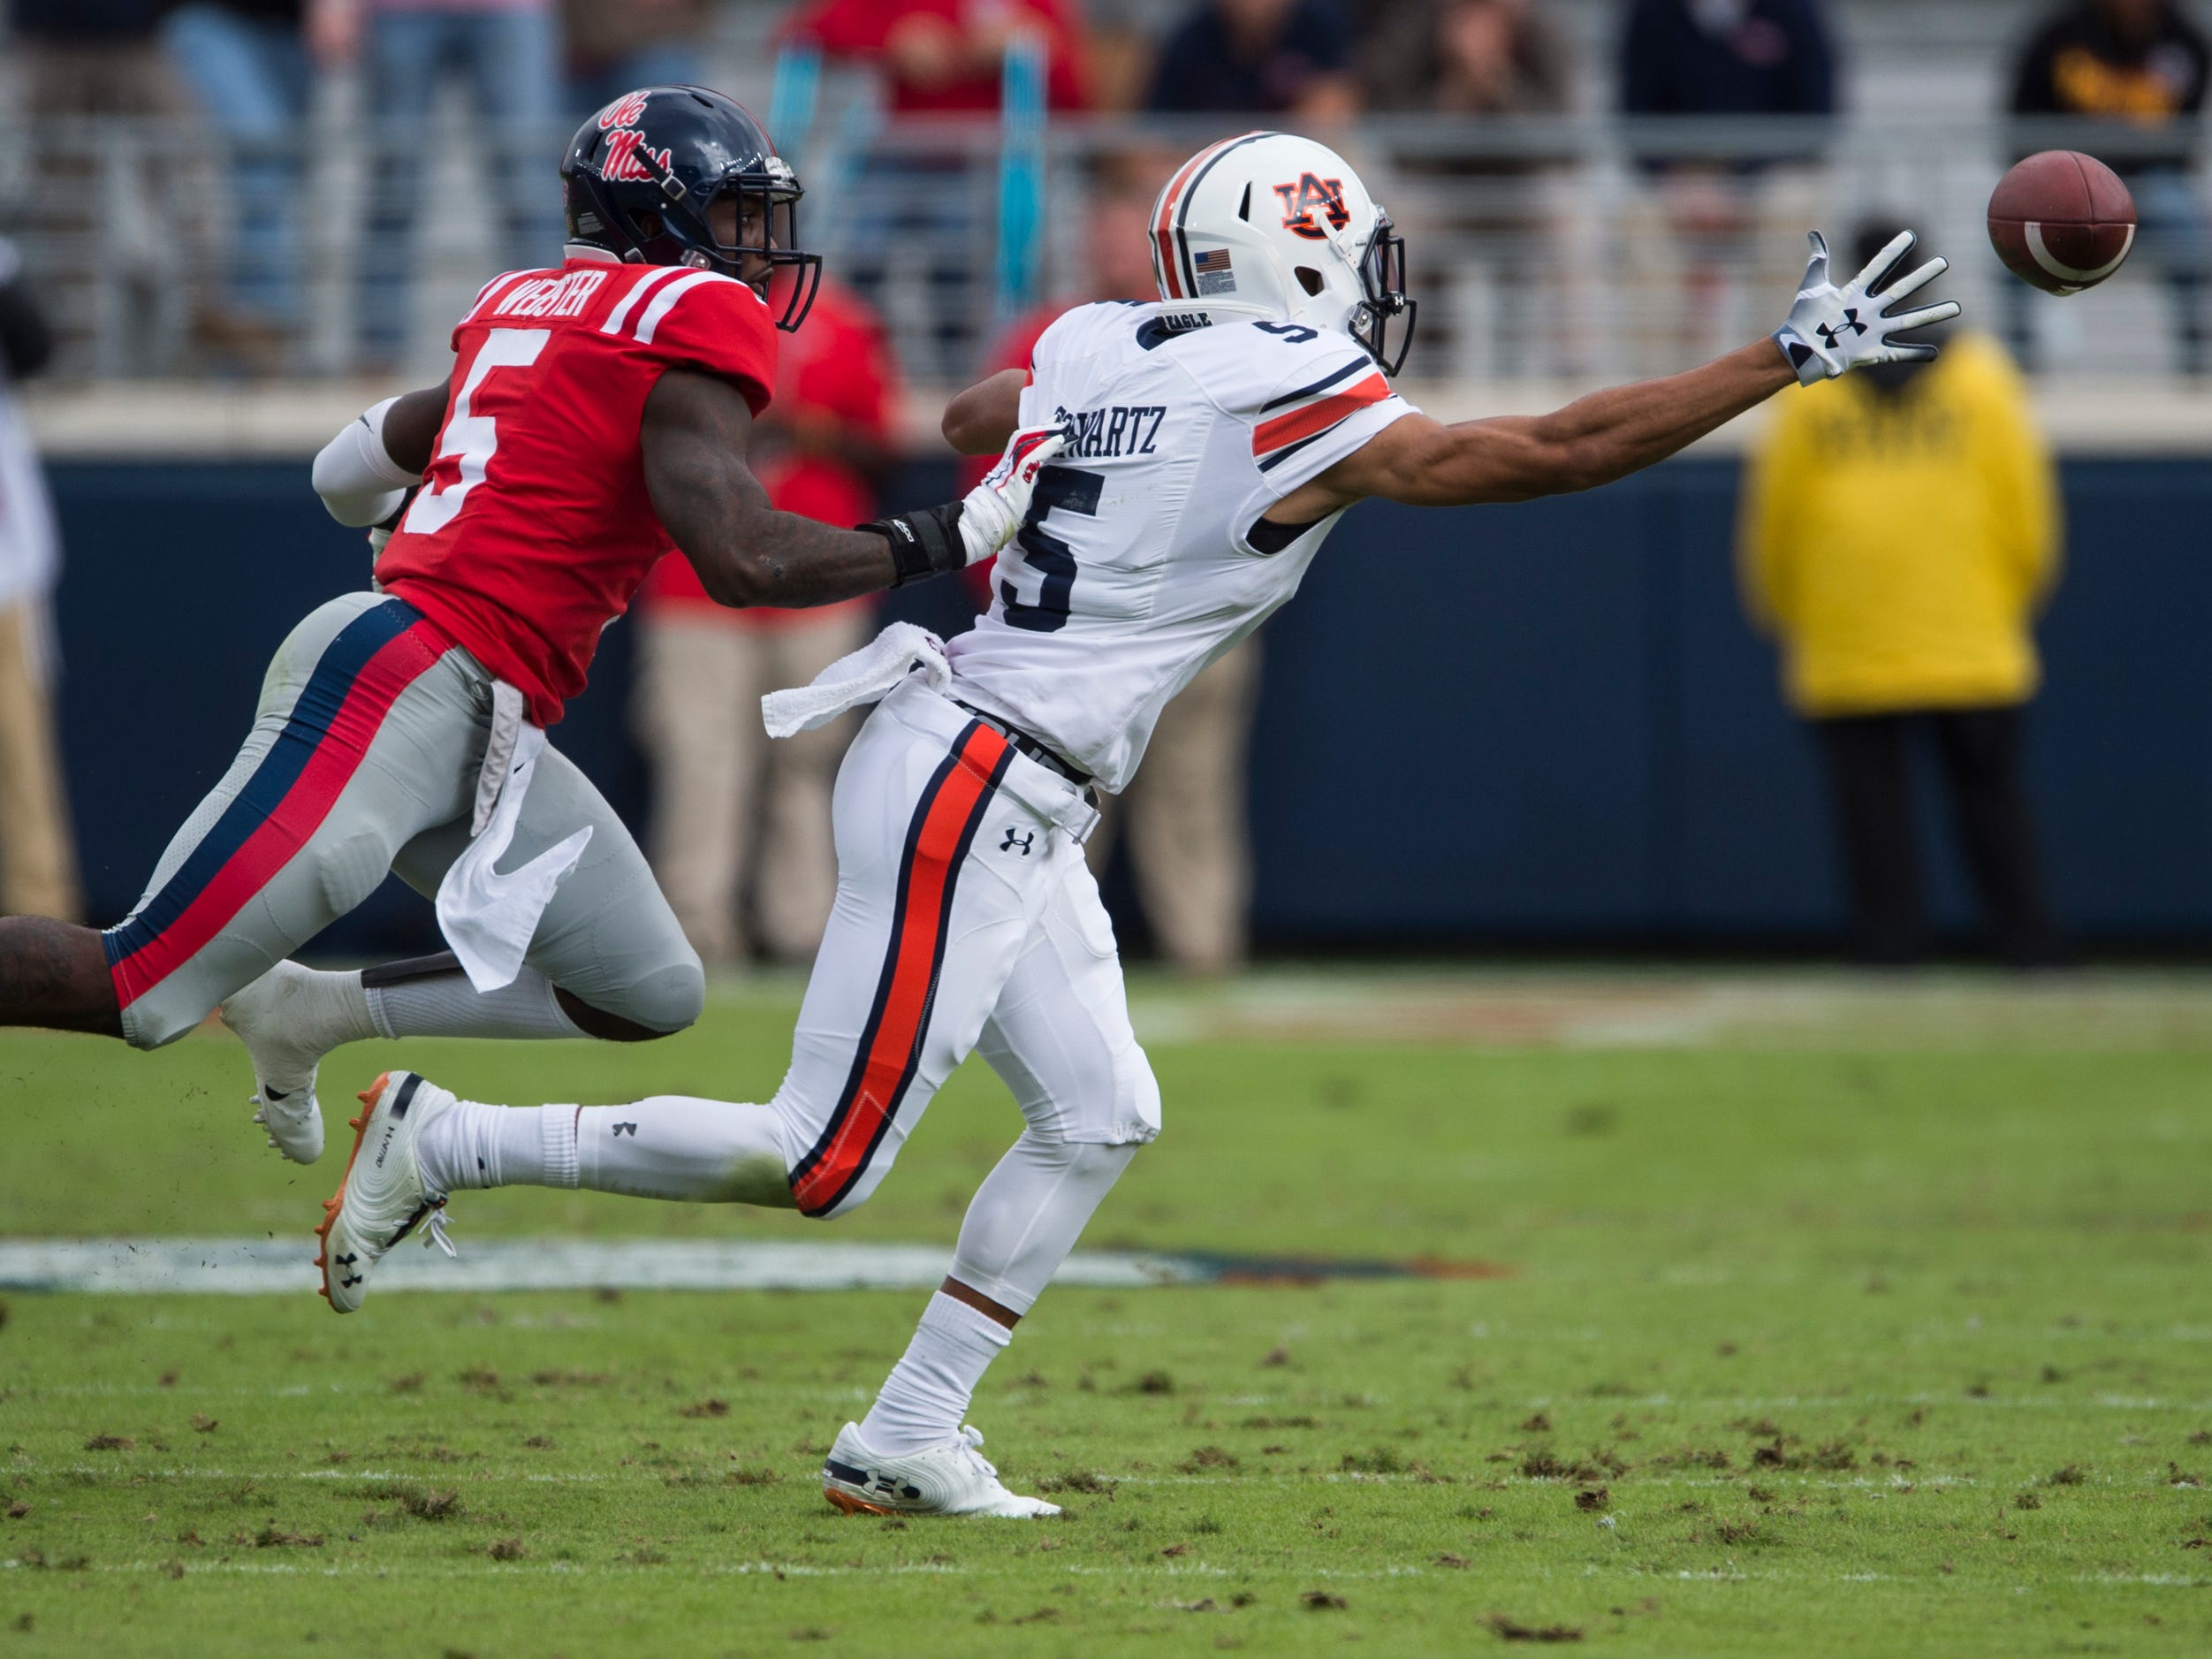 Auburn's Anthony Schwartz (5) stretches for an over thrown ball against Ole Miss at Vaught-Hemingway Stadium in Oxford, Miss., on Saturday, Oct. 20, 2018. Auburn leads Ole Miss 10-6 at halftime.